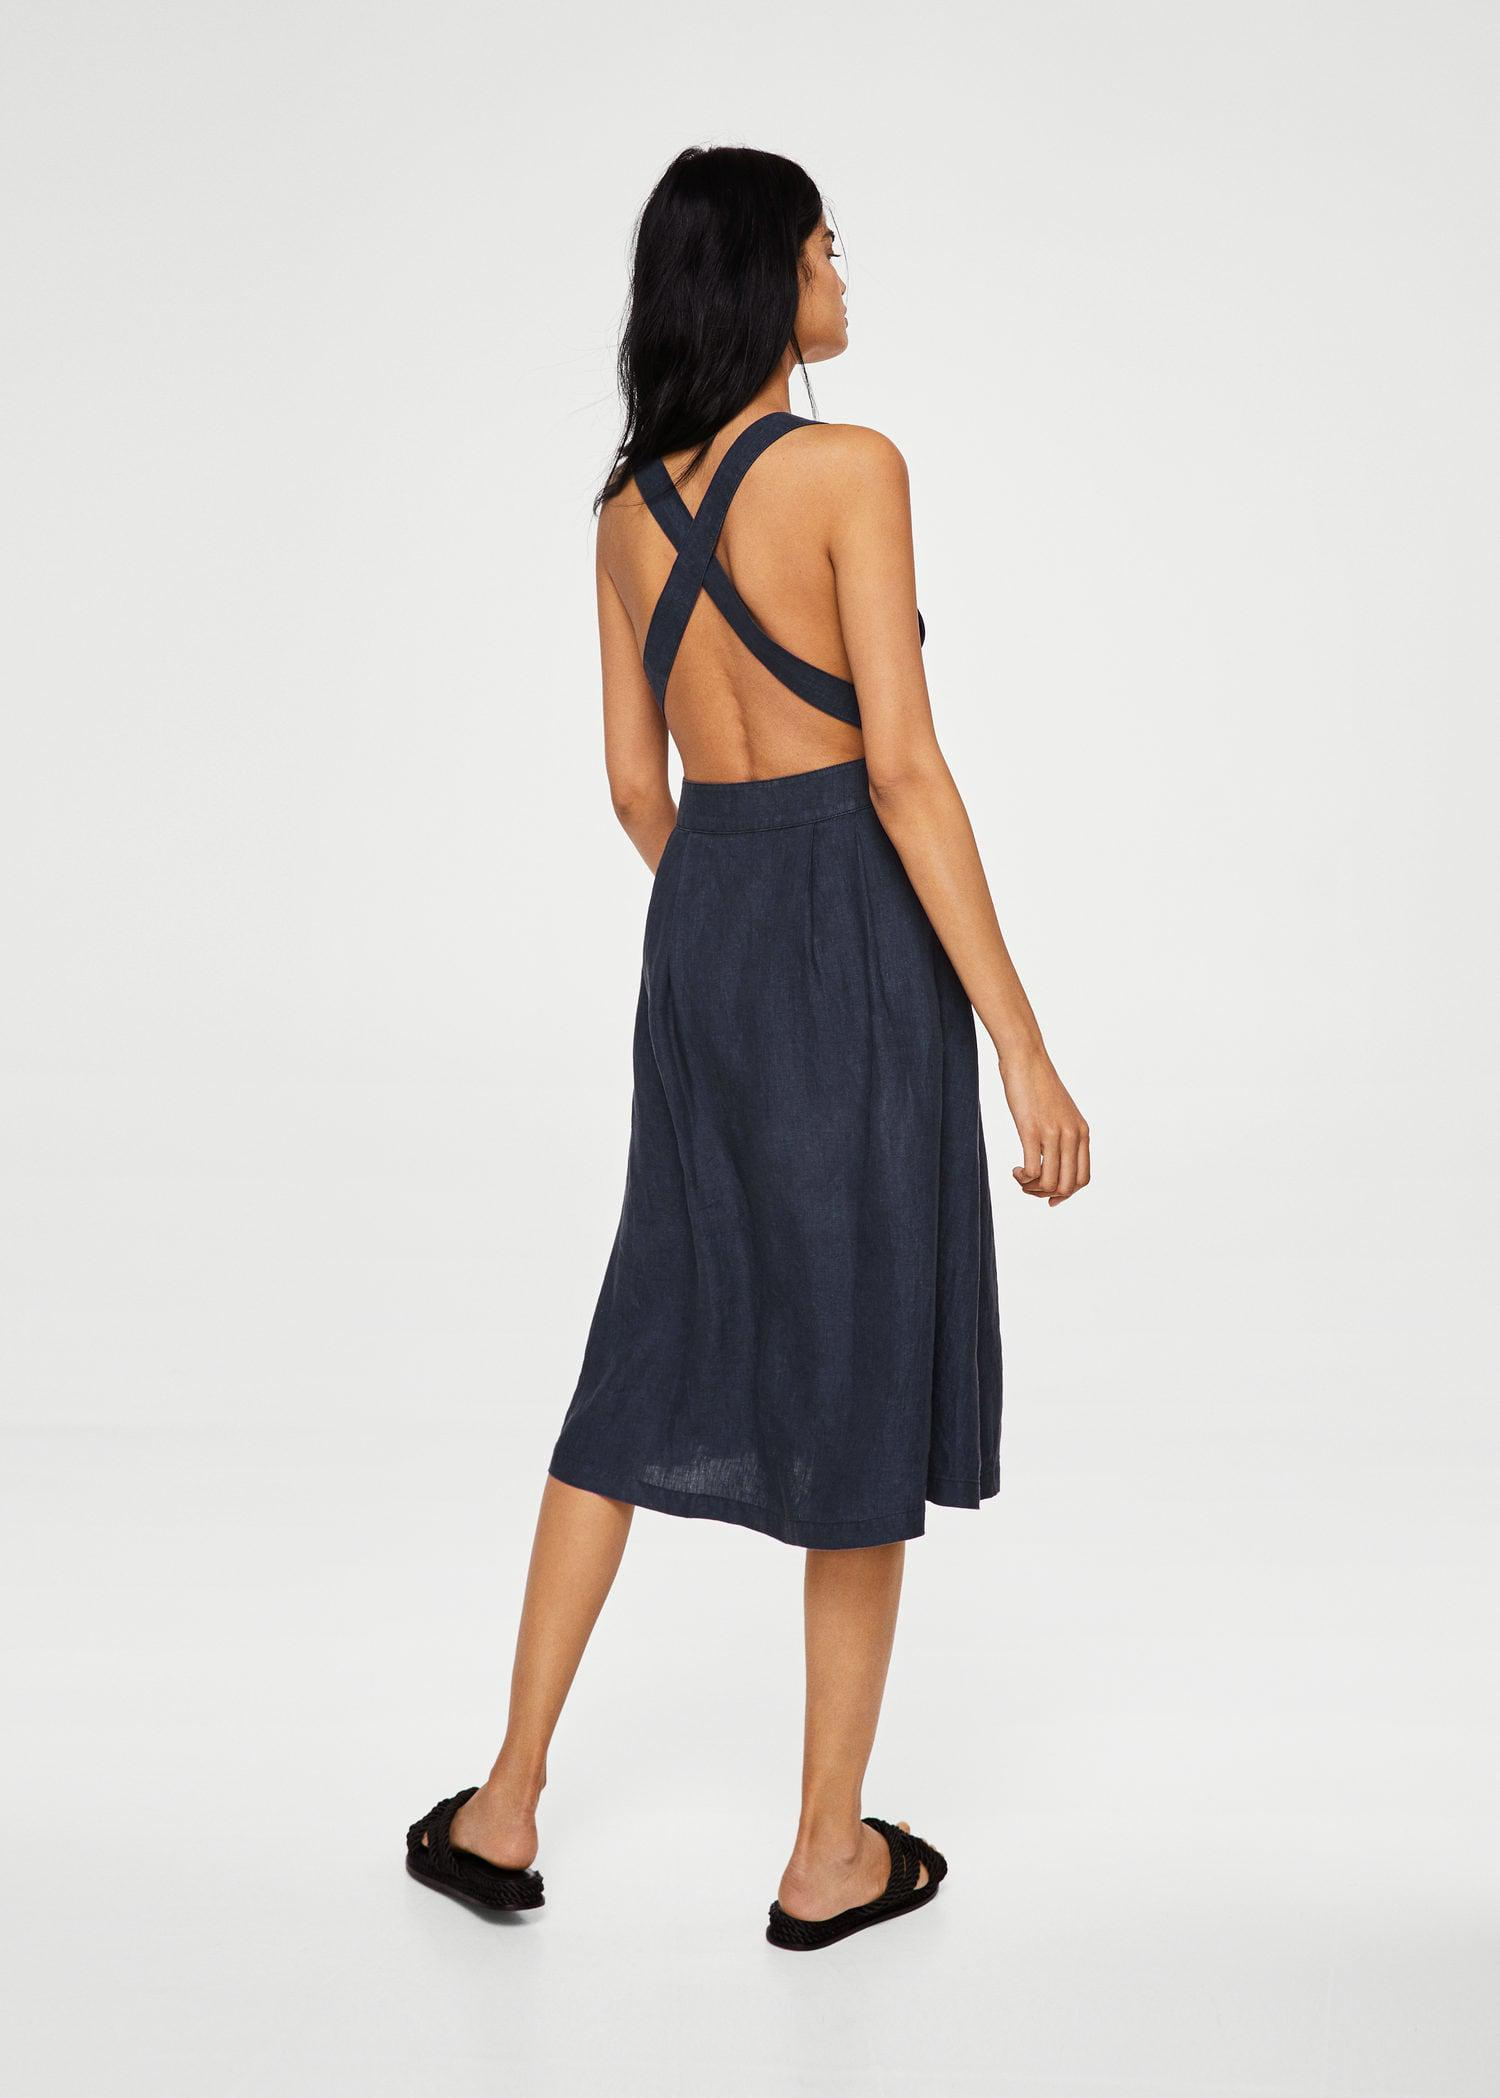 Lyst - Mango Linen-blend Midi Dress in Blue 50082bcd9